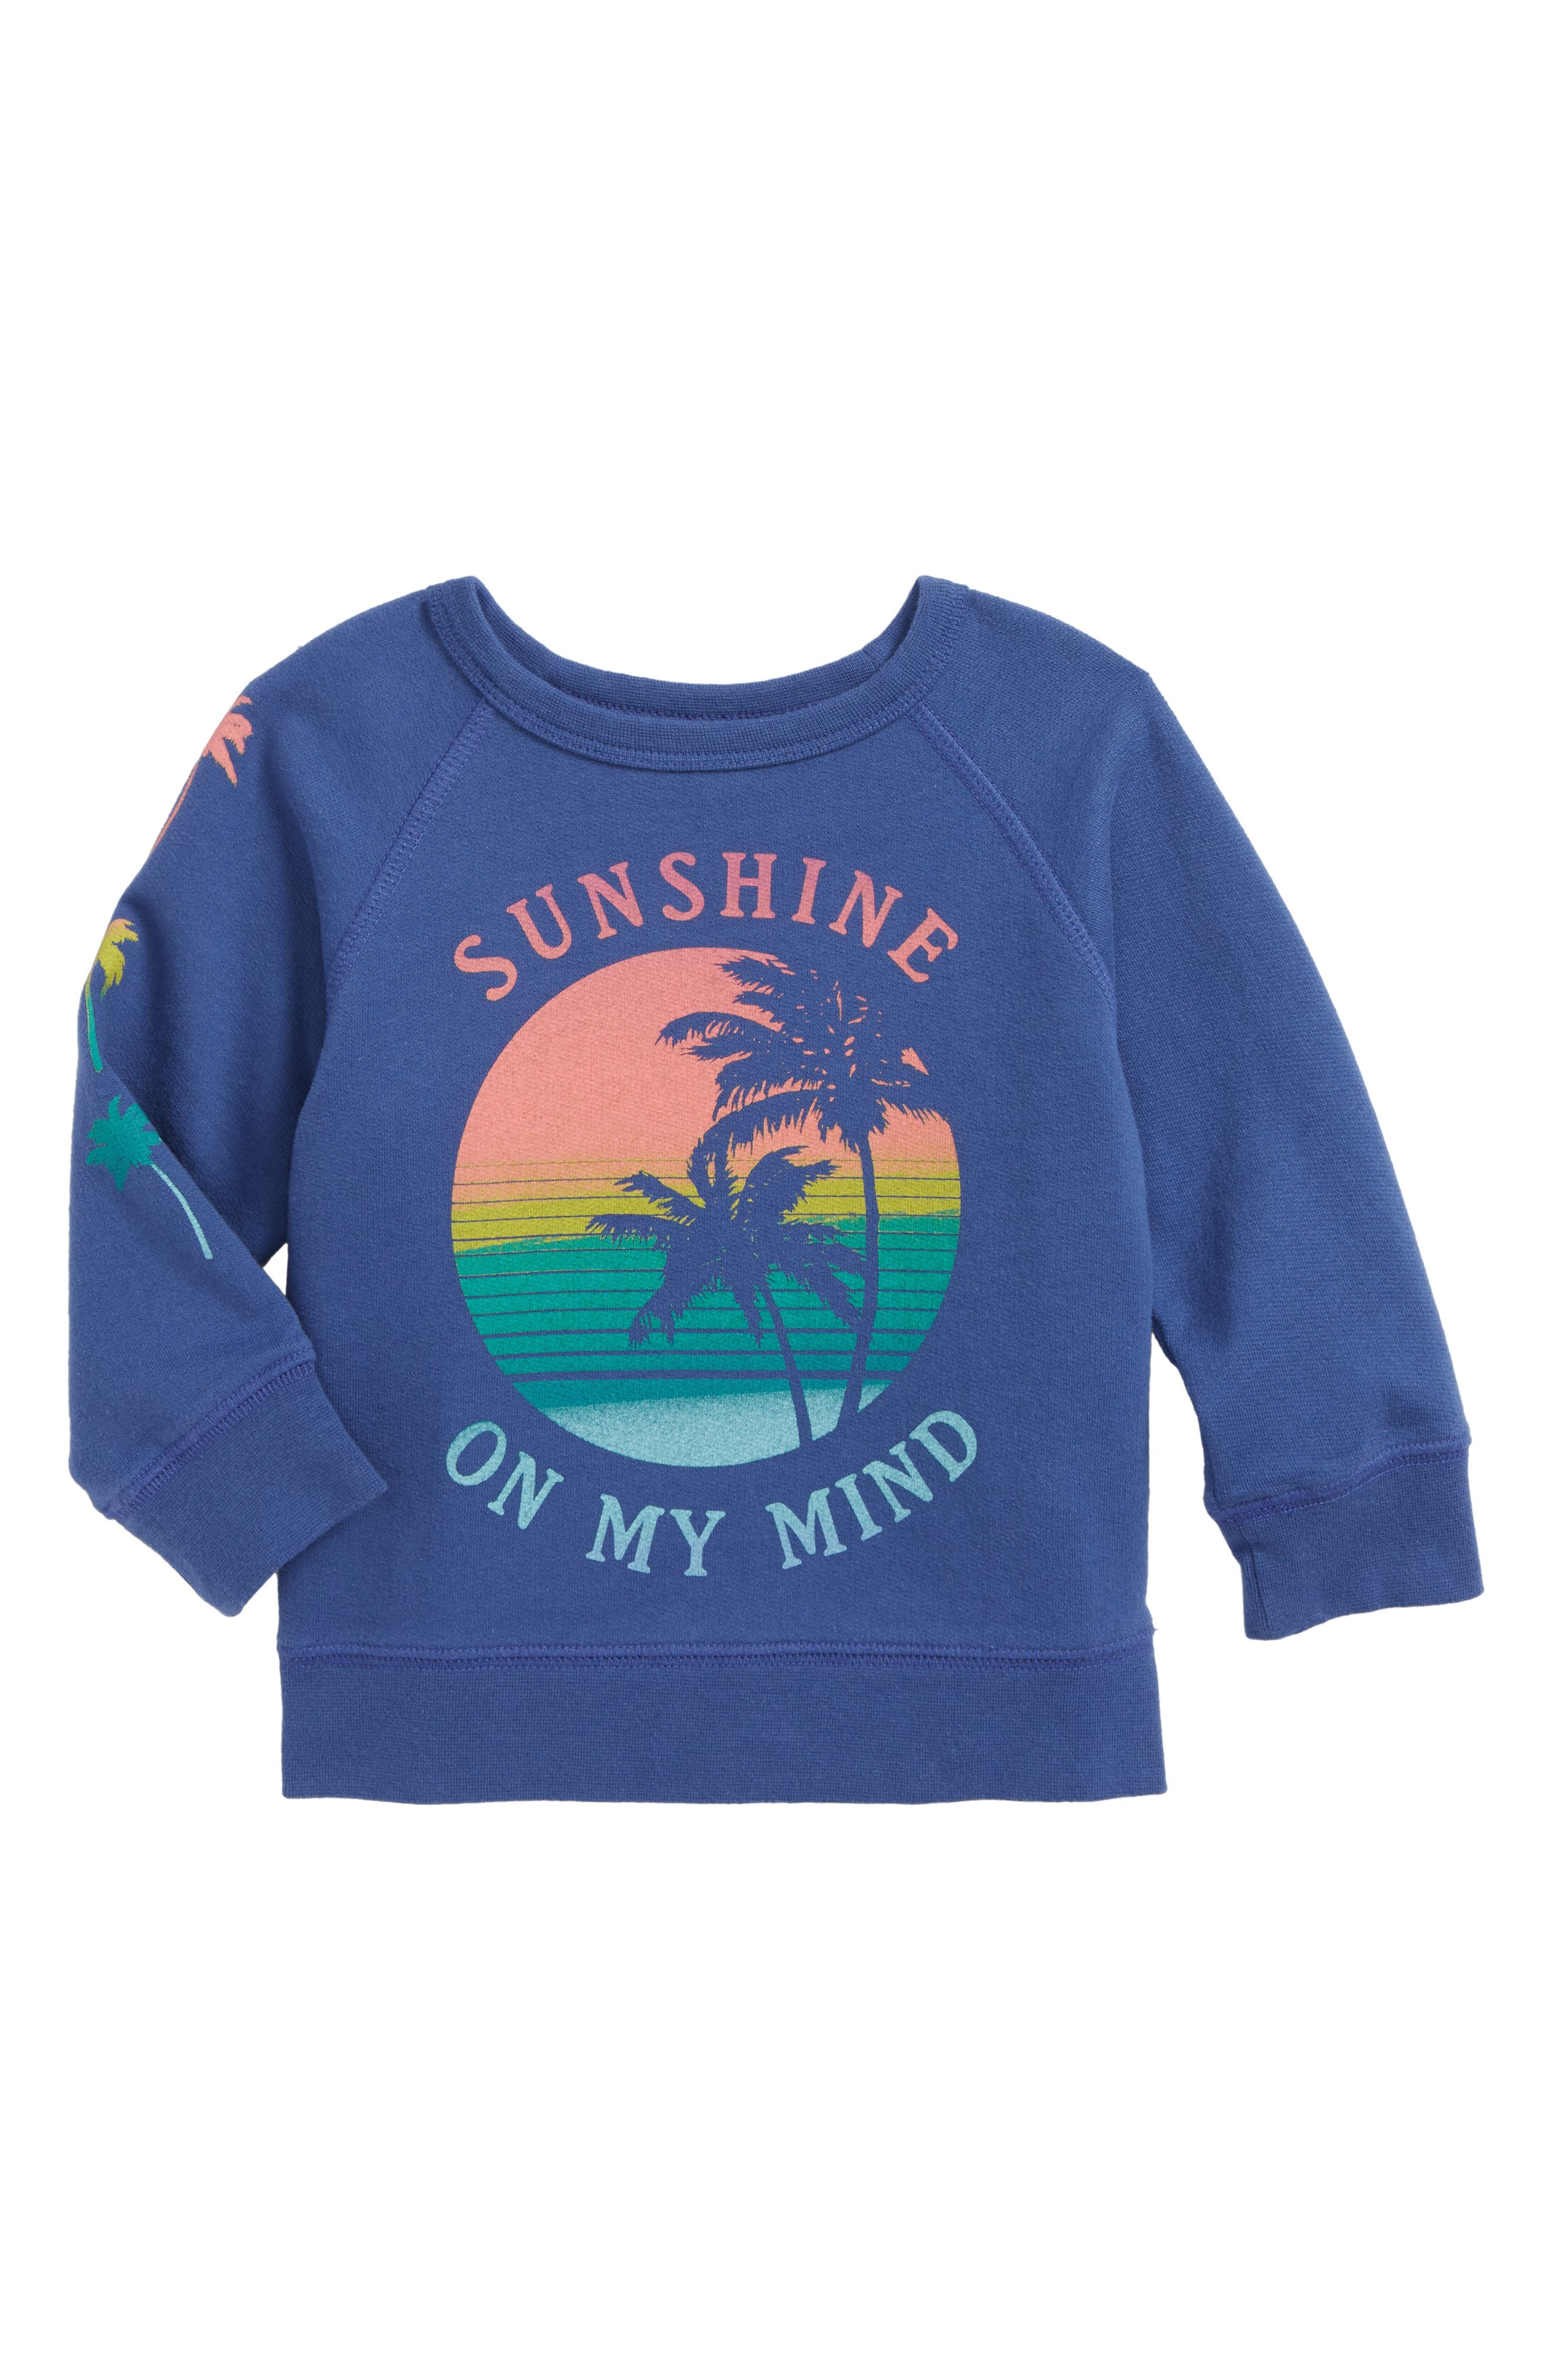 Sunshine On My Mind Graphic Tee,                         Main,                         color, Navy